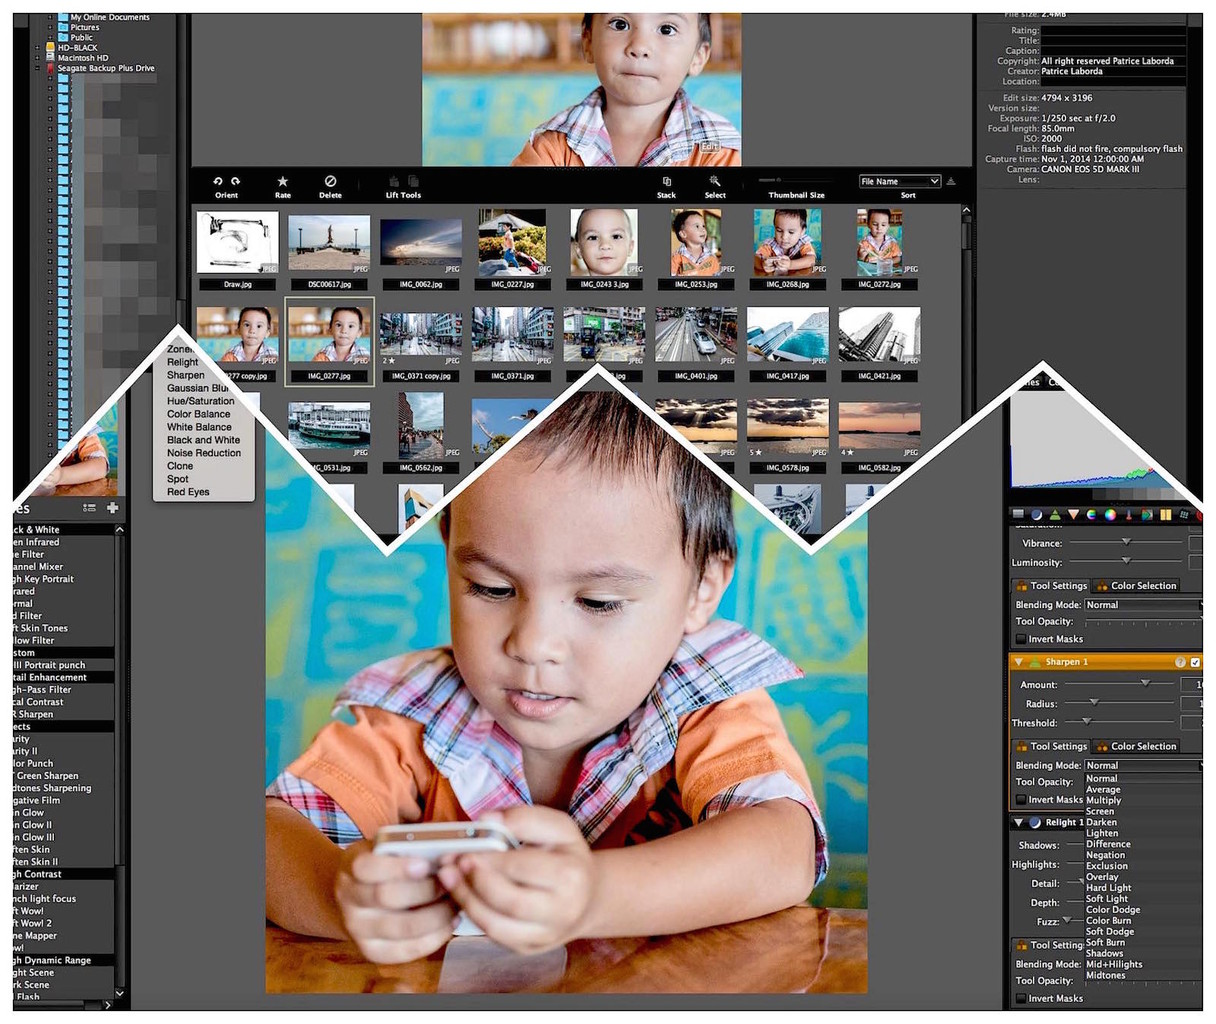 120 Free desktop photo editor's software alternative to Photoshop